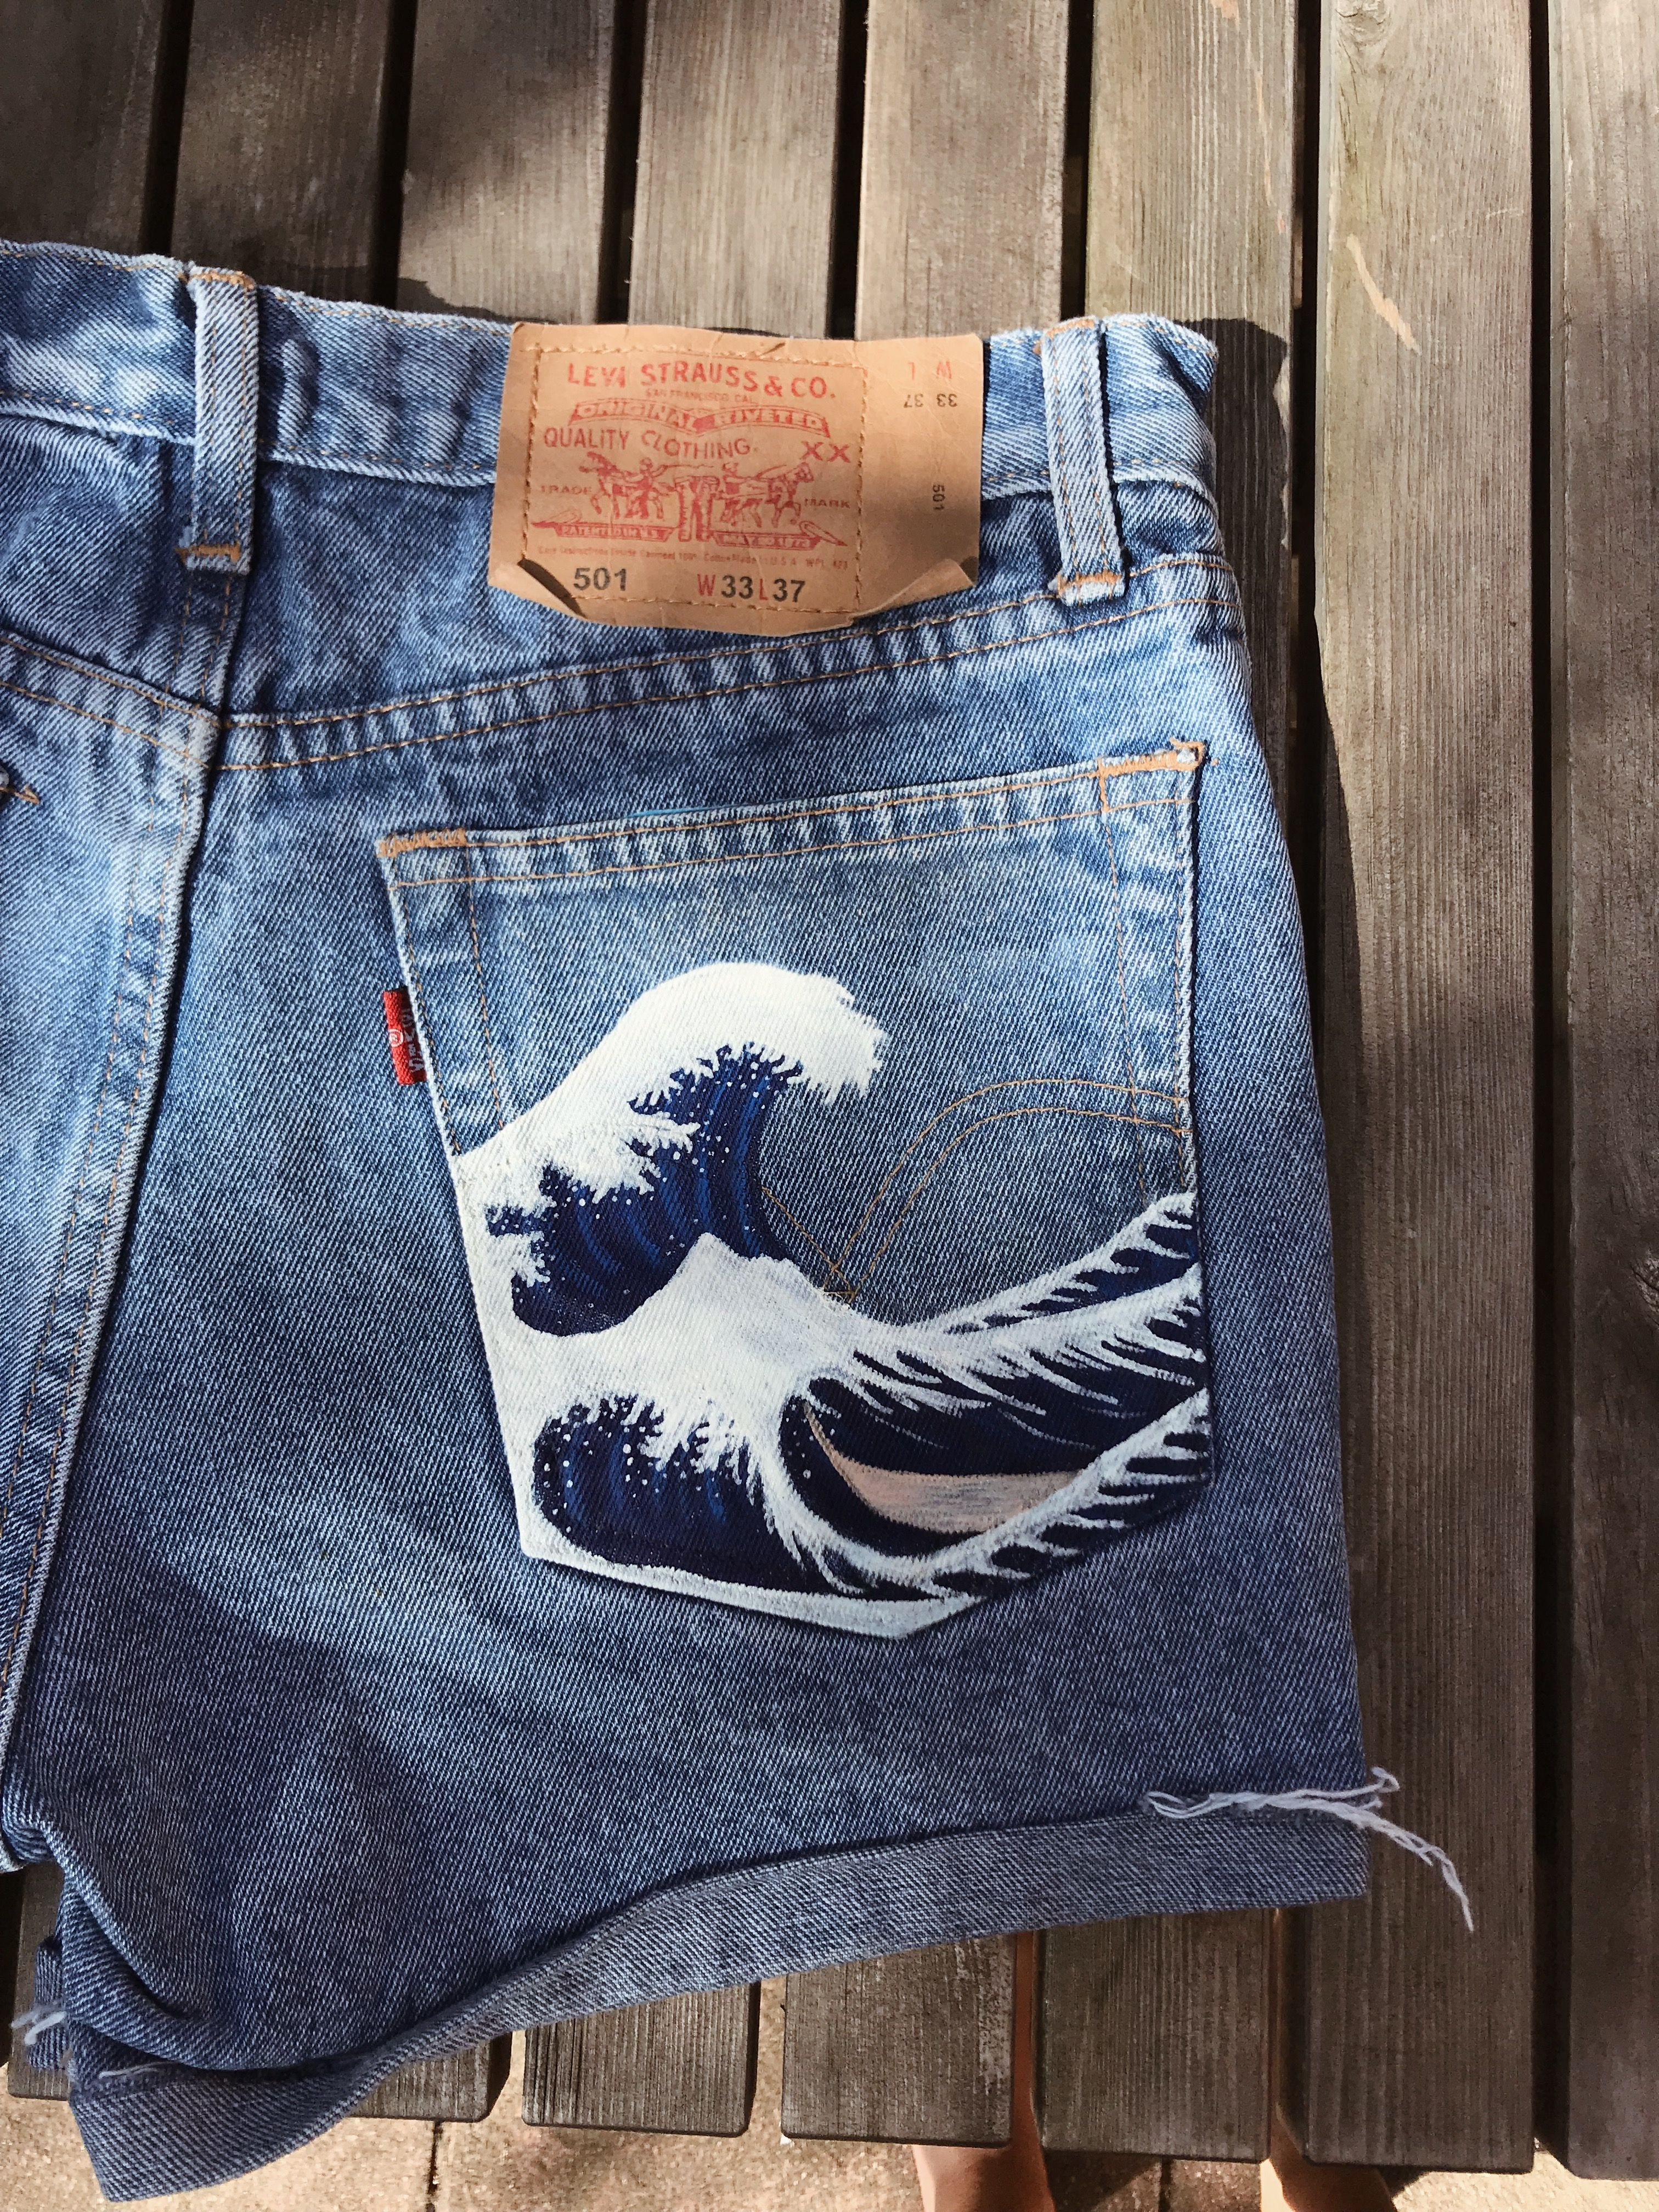 Levis painted